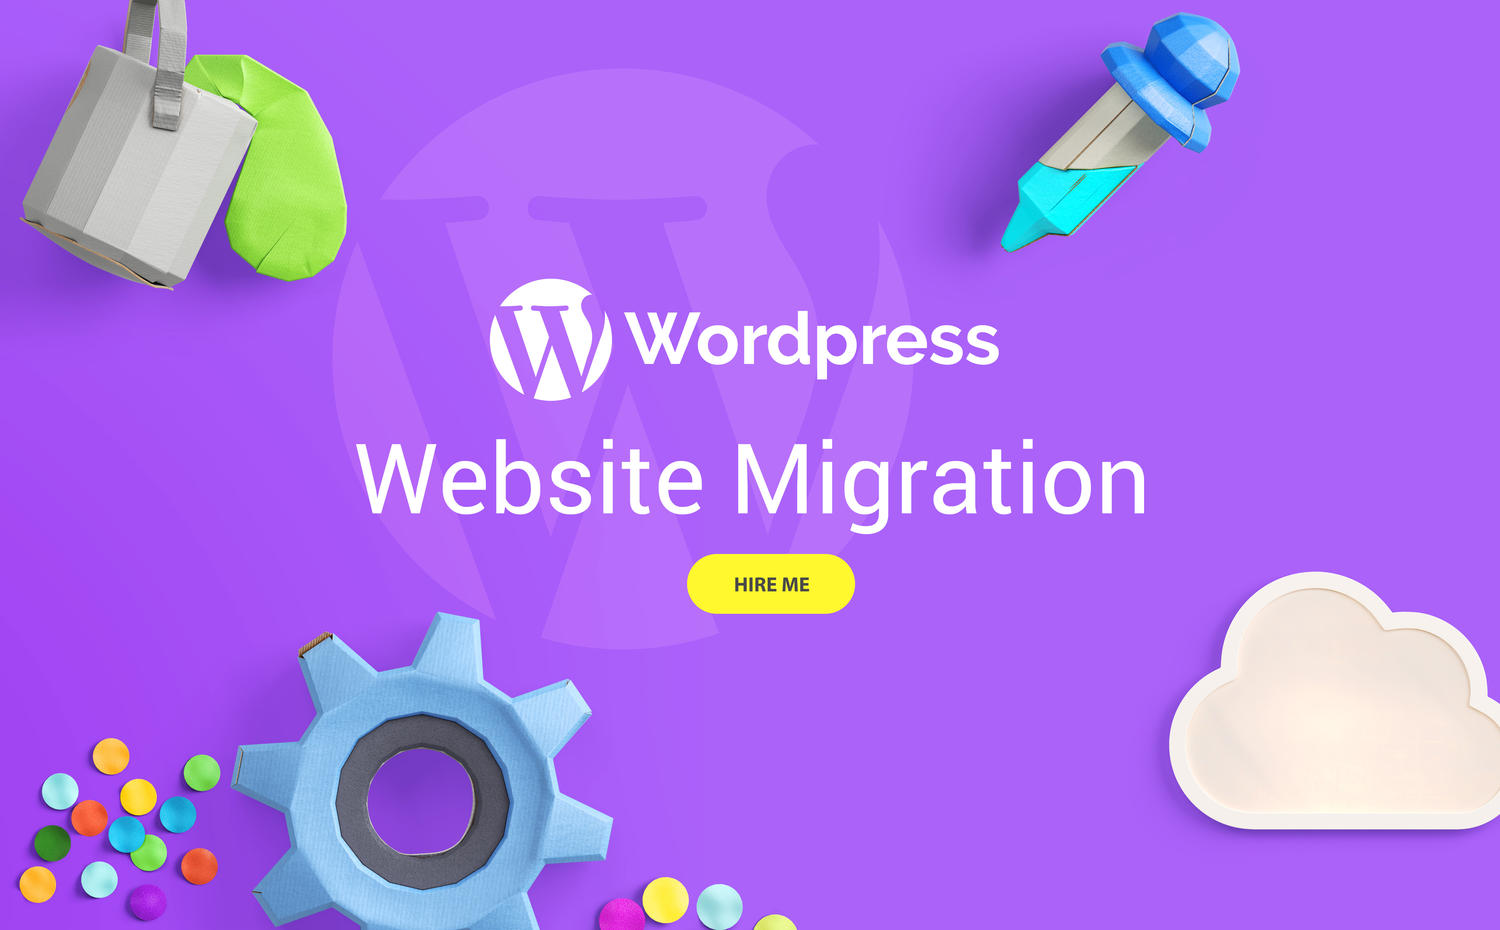 Wordpress Website Migration Service by CreativeShop7 - 99957